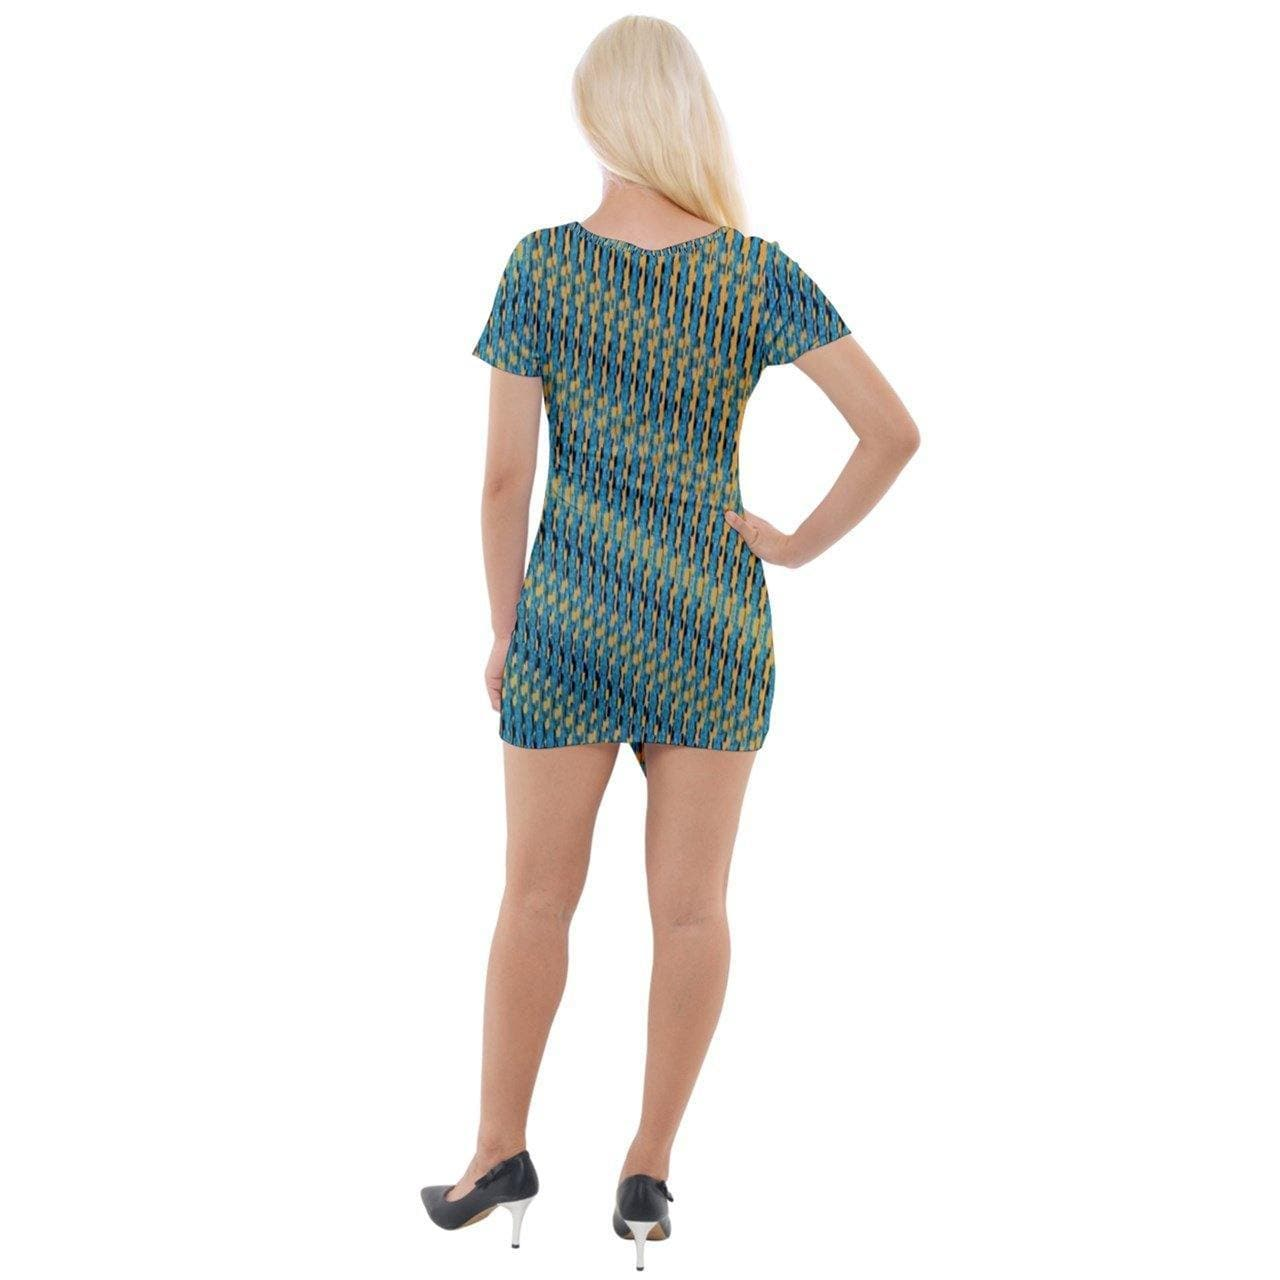 Weaved Short Sleeve Asymmetric Mini Dress - Tie-Fly